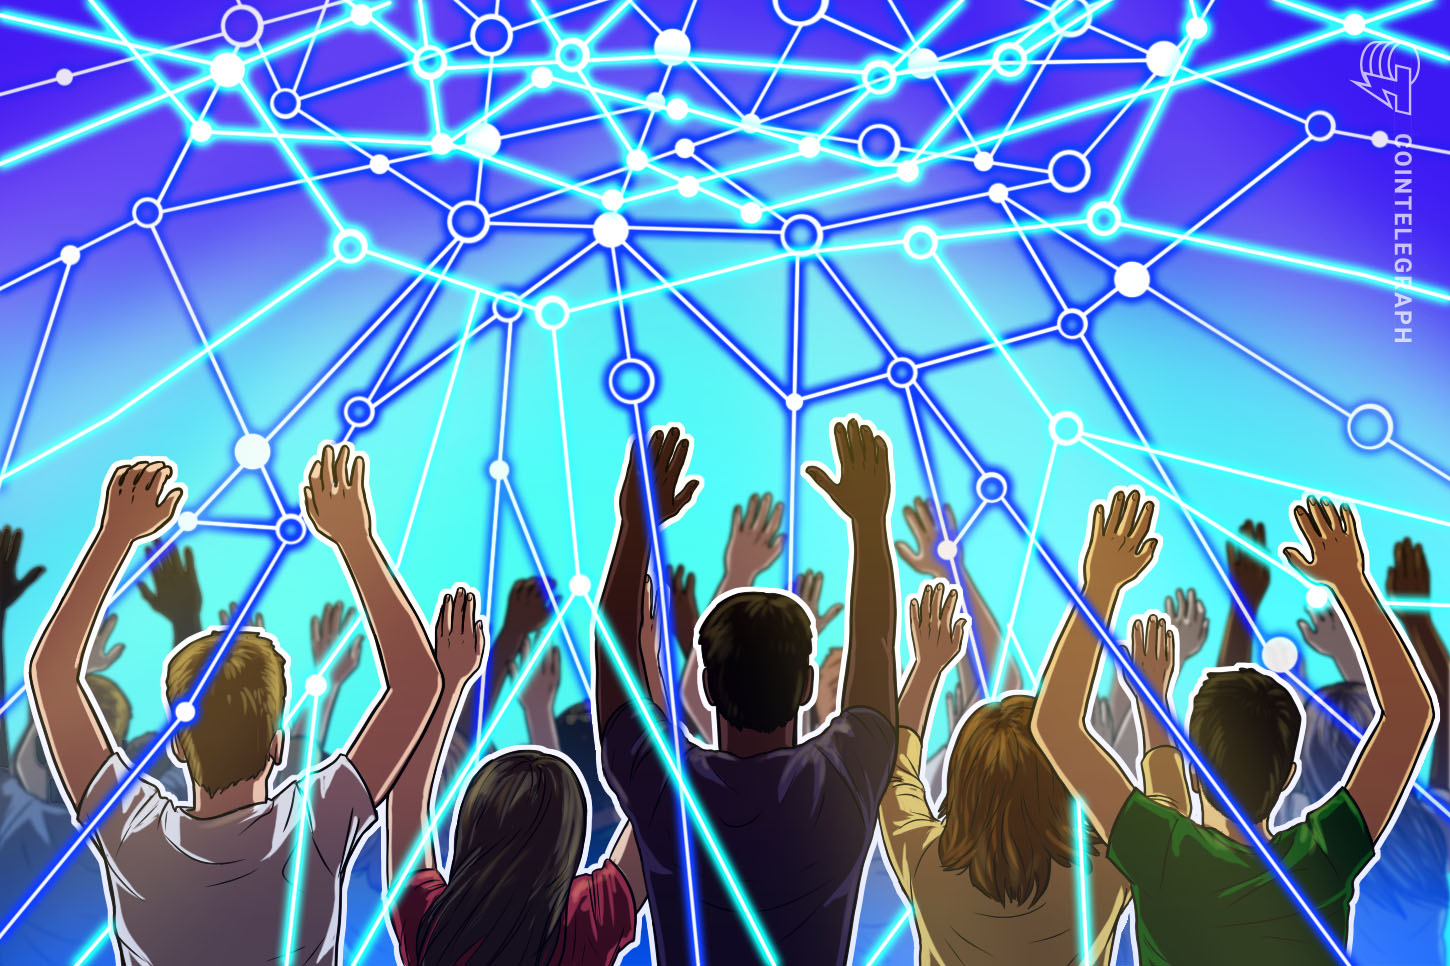 Harmony announces $1M hackathon aimed at merging traditional finance and DeFi